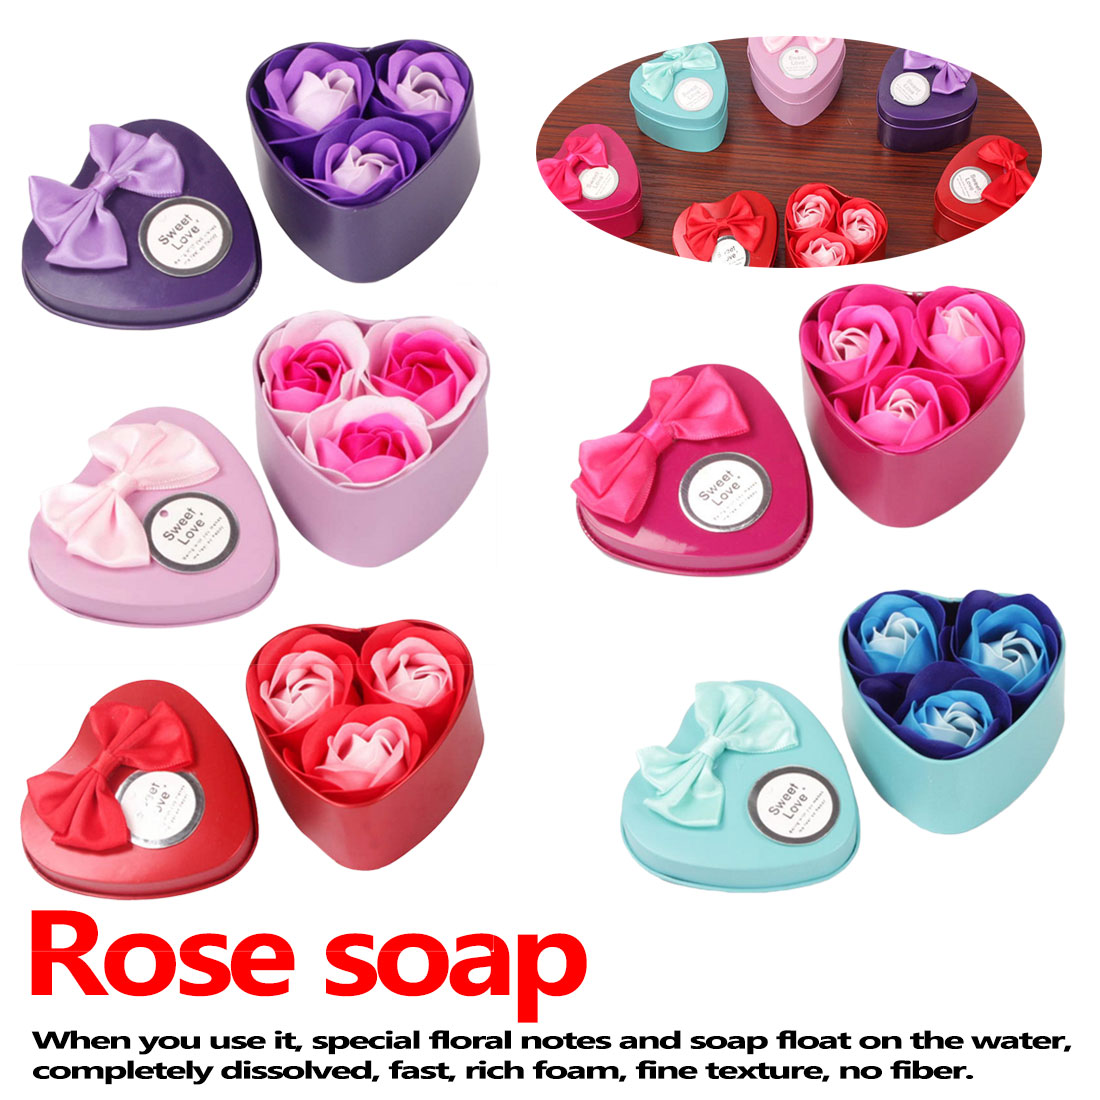 Red 3Pcs Artificial Flower Rose Soap Flower Heart-Shaped Iron Box Scented Bath Body Petal Rose Small Gift Box